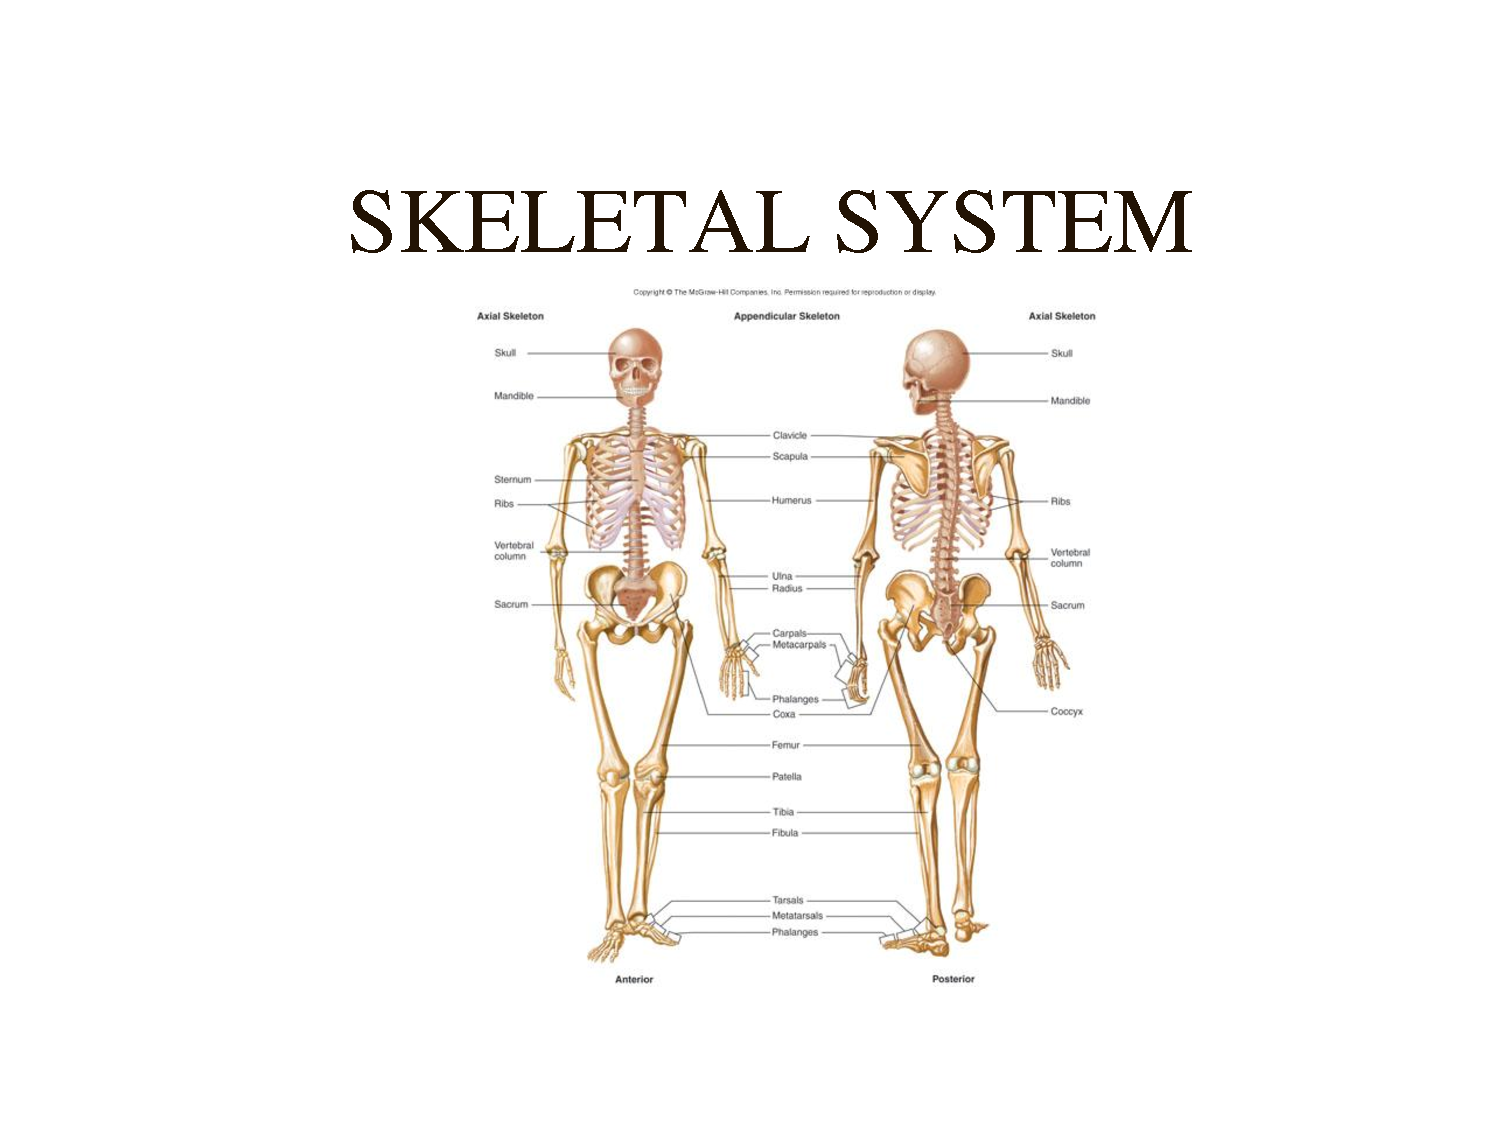 Functions Of Skeletal System Diagram - Block And Schematic Diagrams •